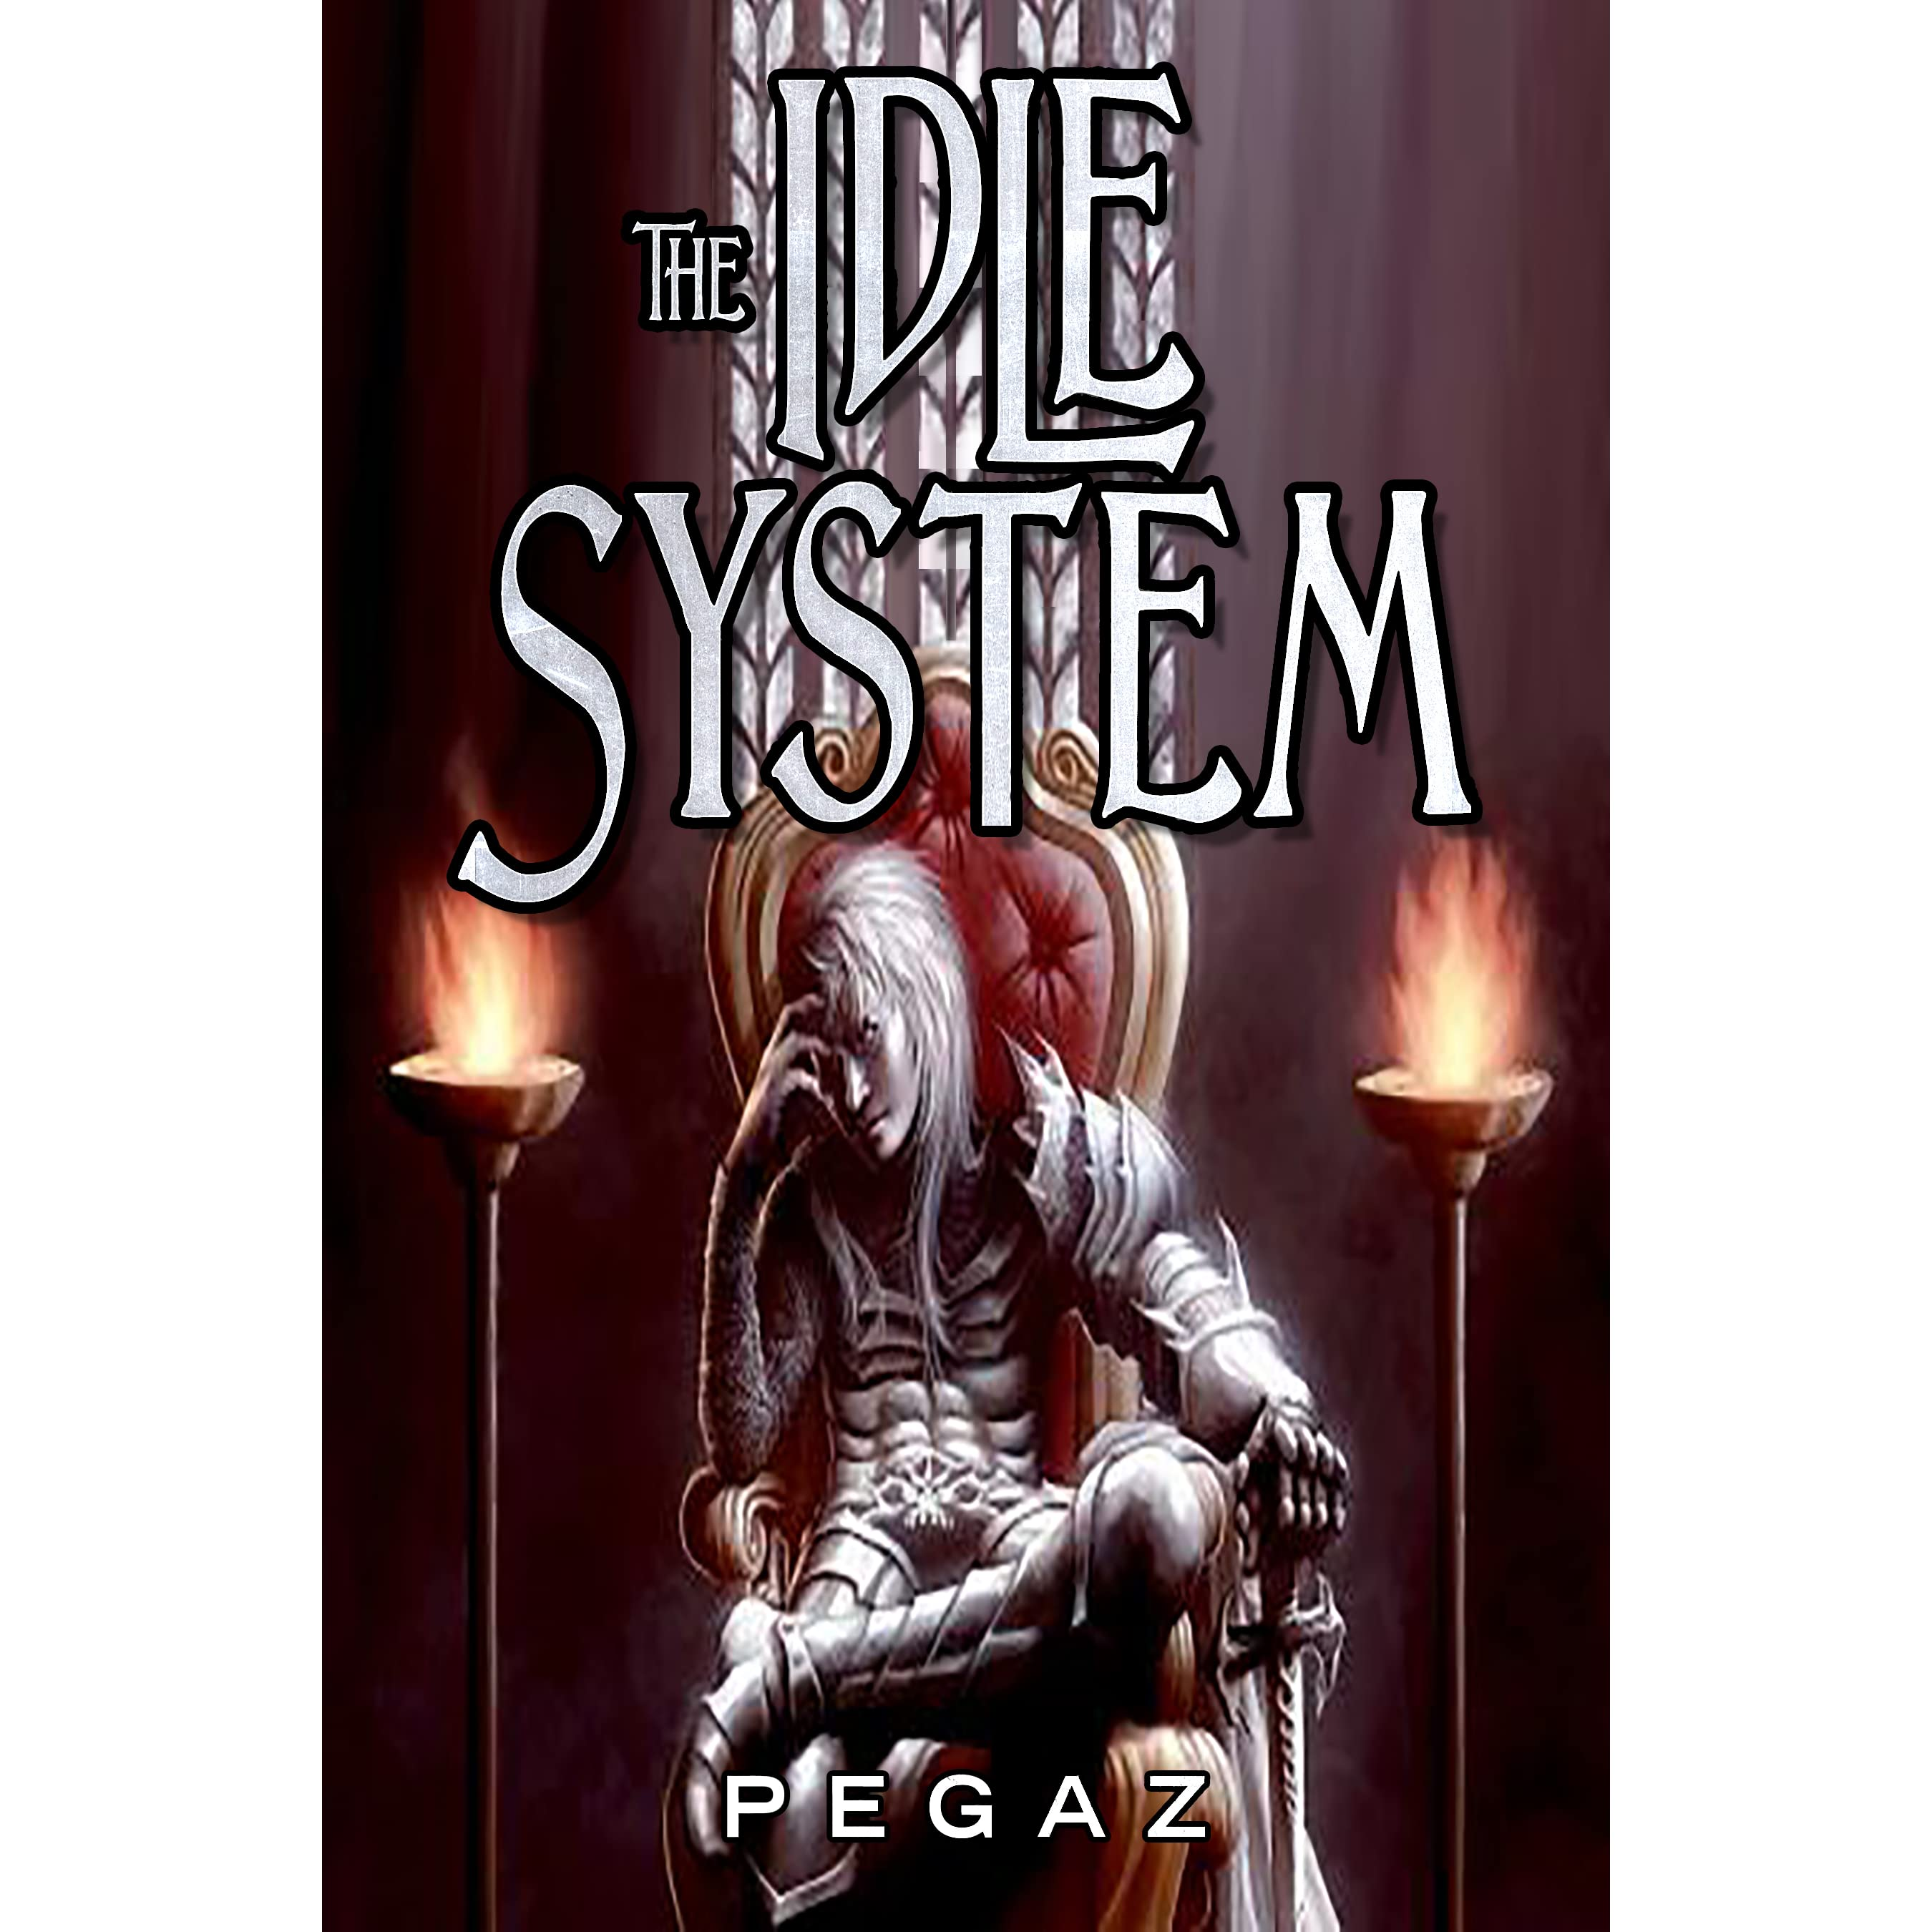 The Rogues (The Idle System #2) by Pegaz